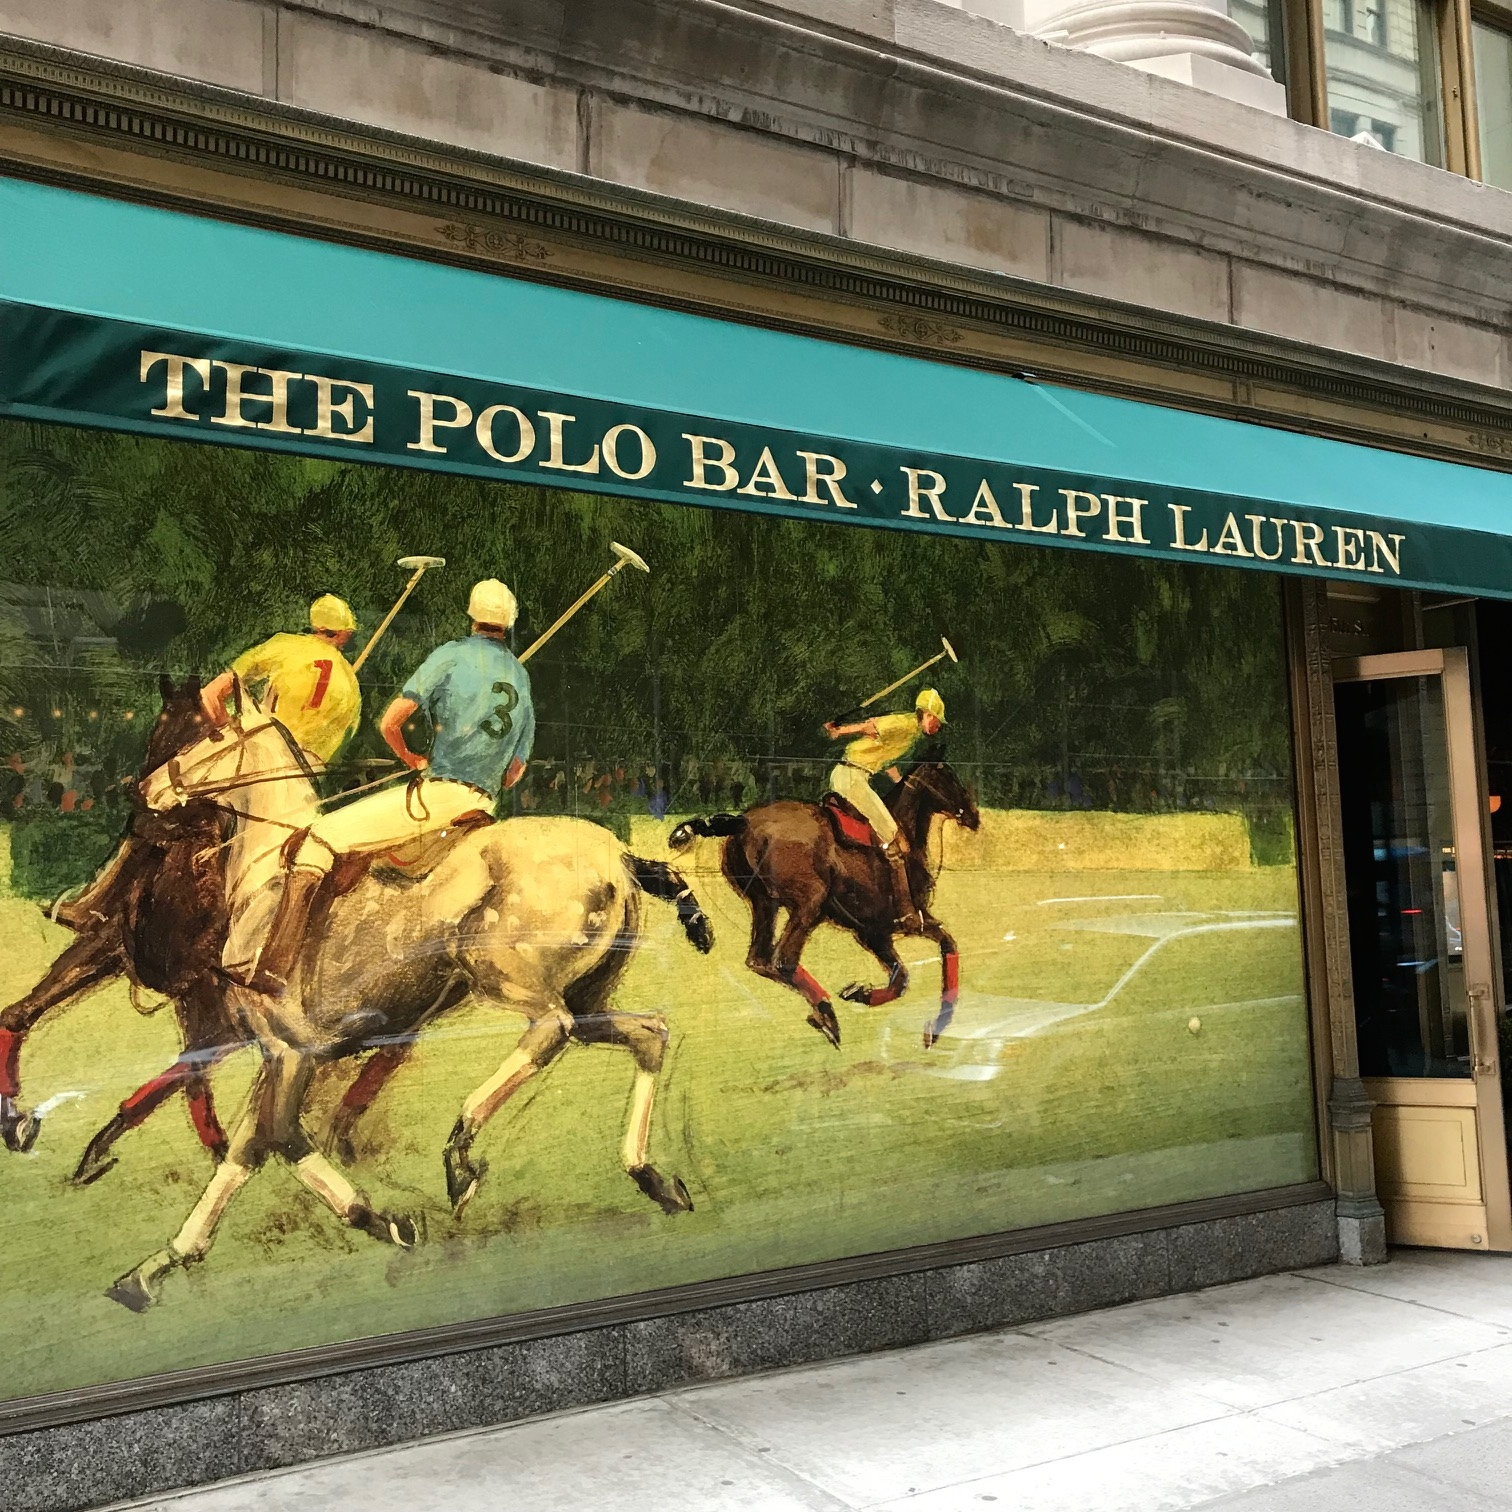 Horsin' Around At The Polo Bar…